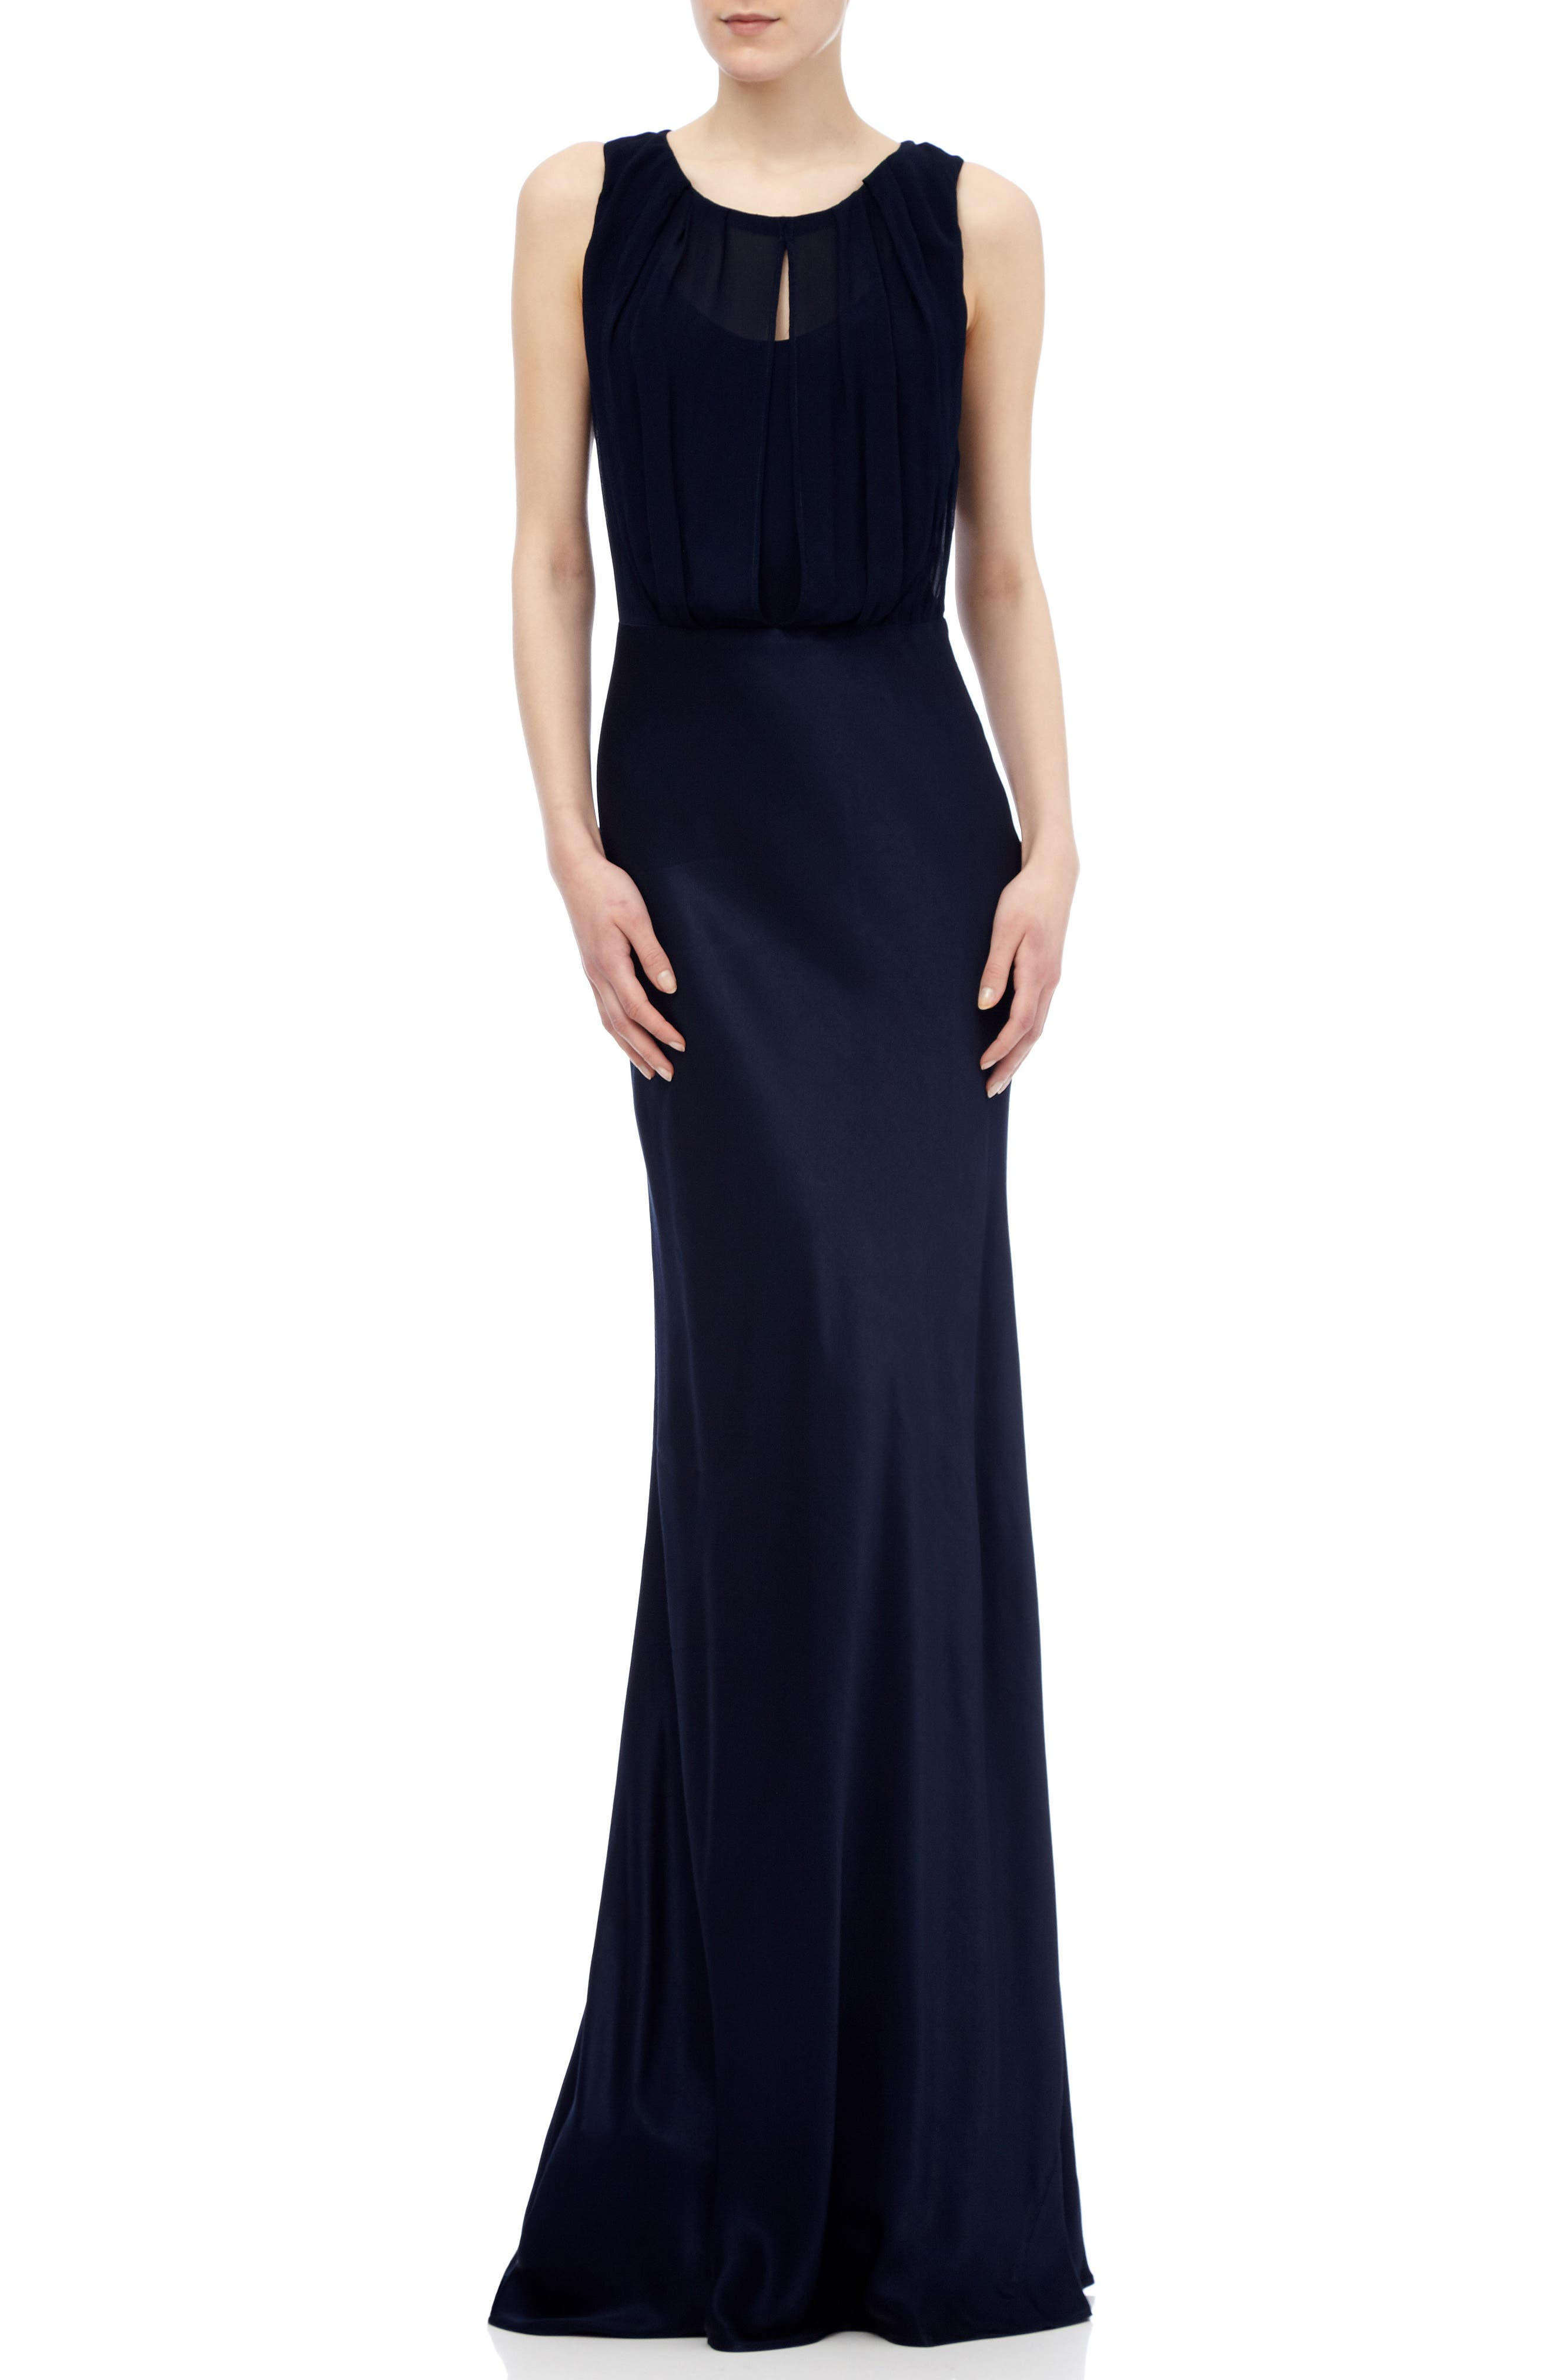 Claudia Cowl Back Gown,                         Main,                         color, Navy